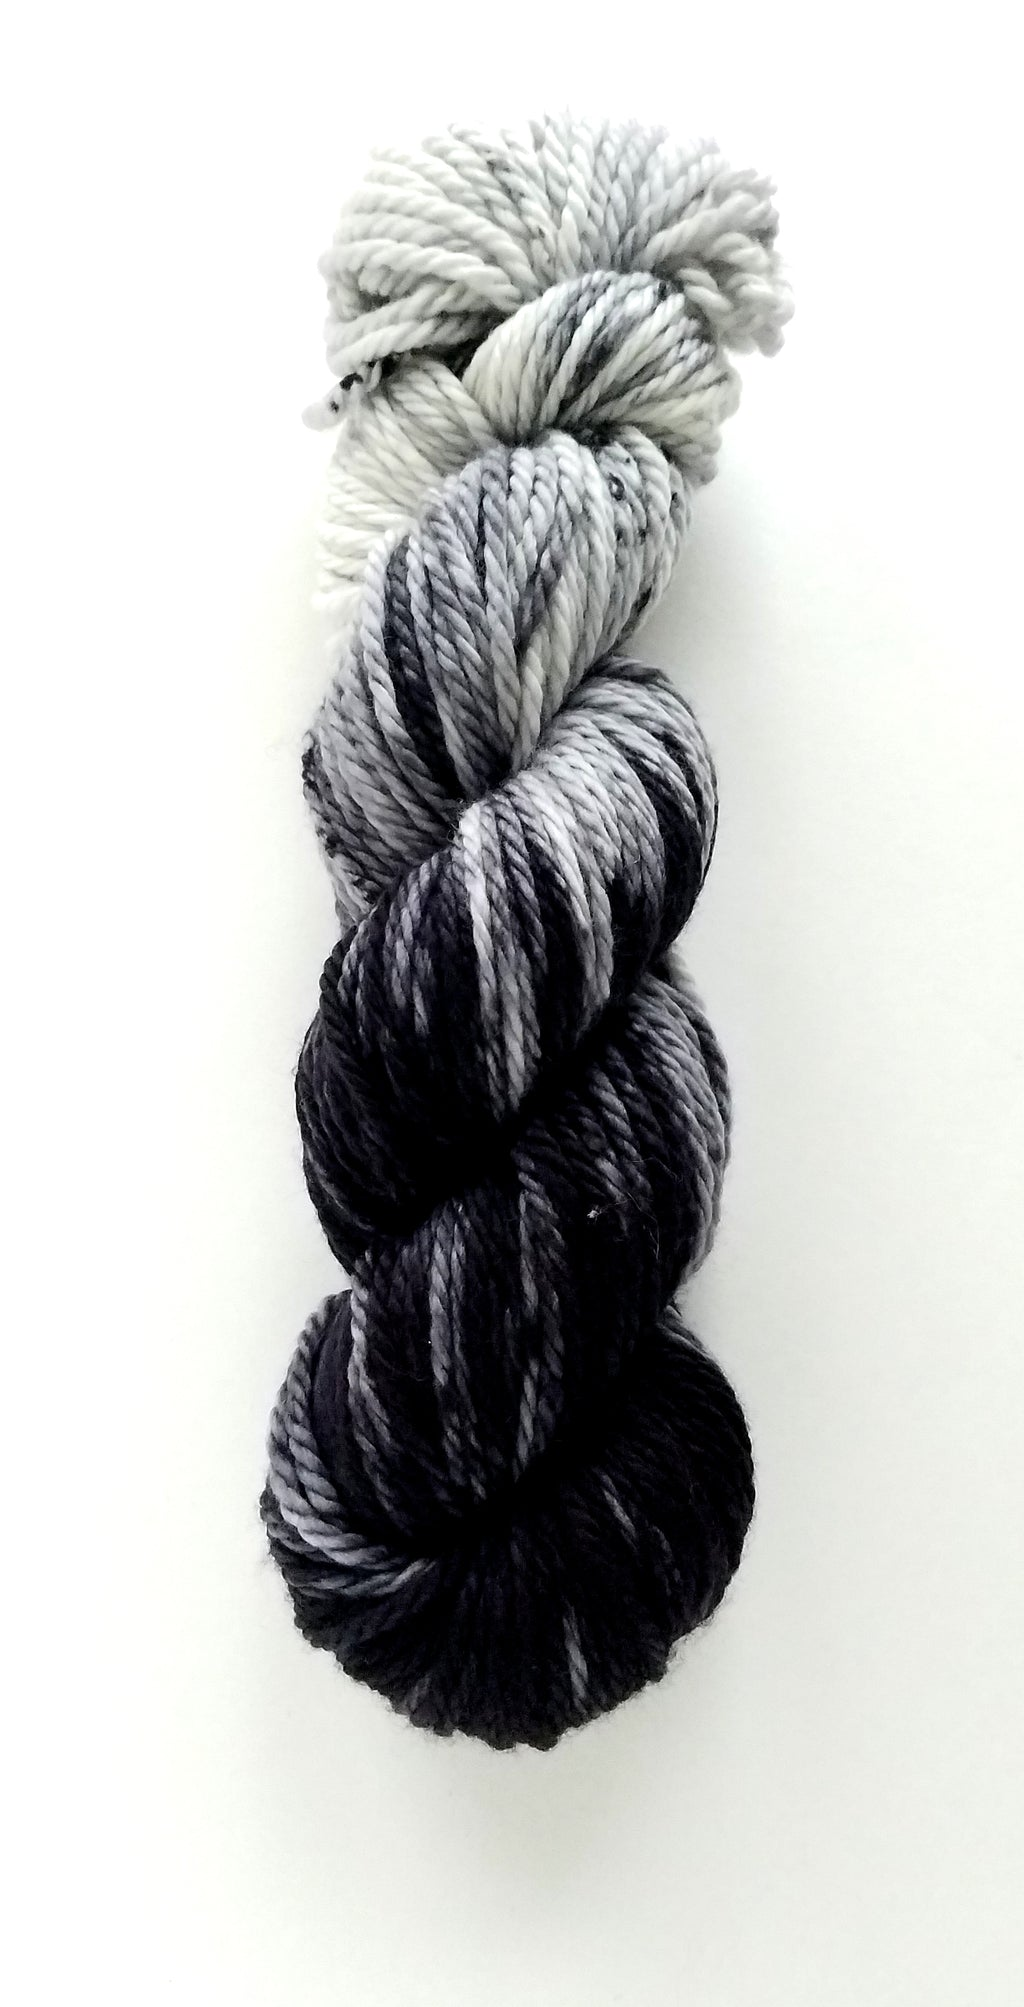 Andy's Beard Hand Dyed Yarn